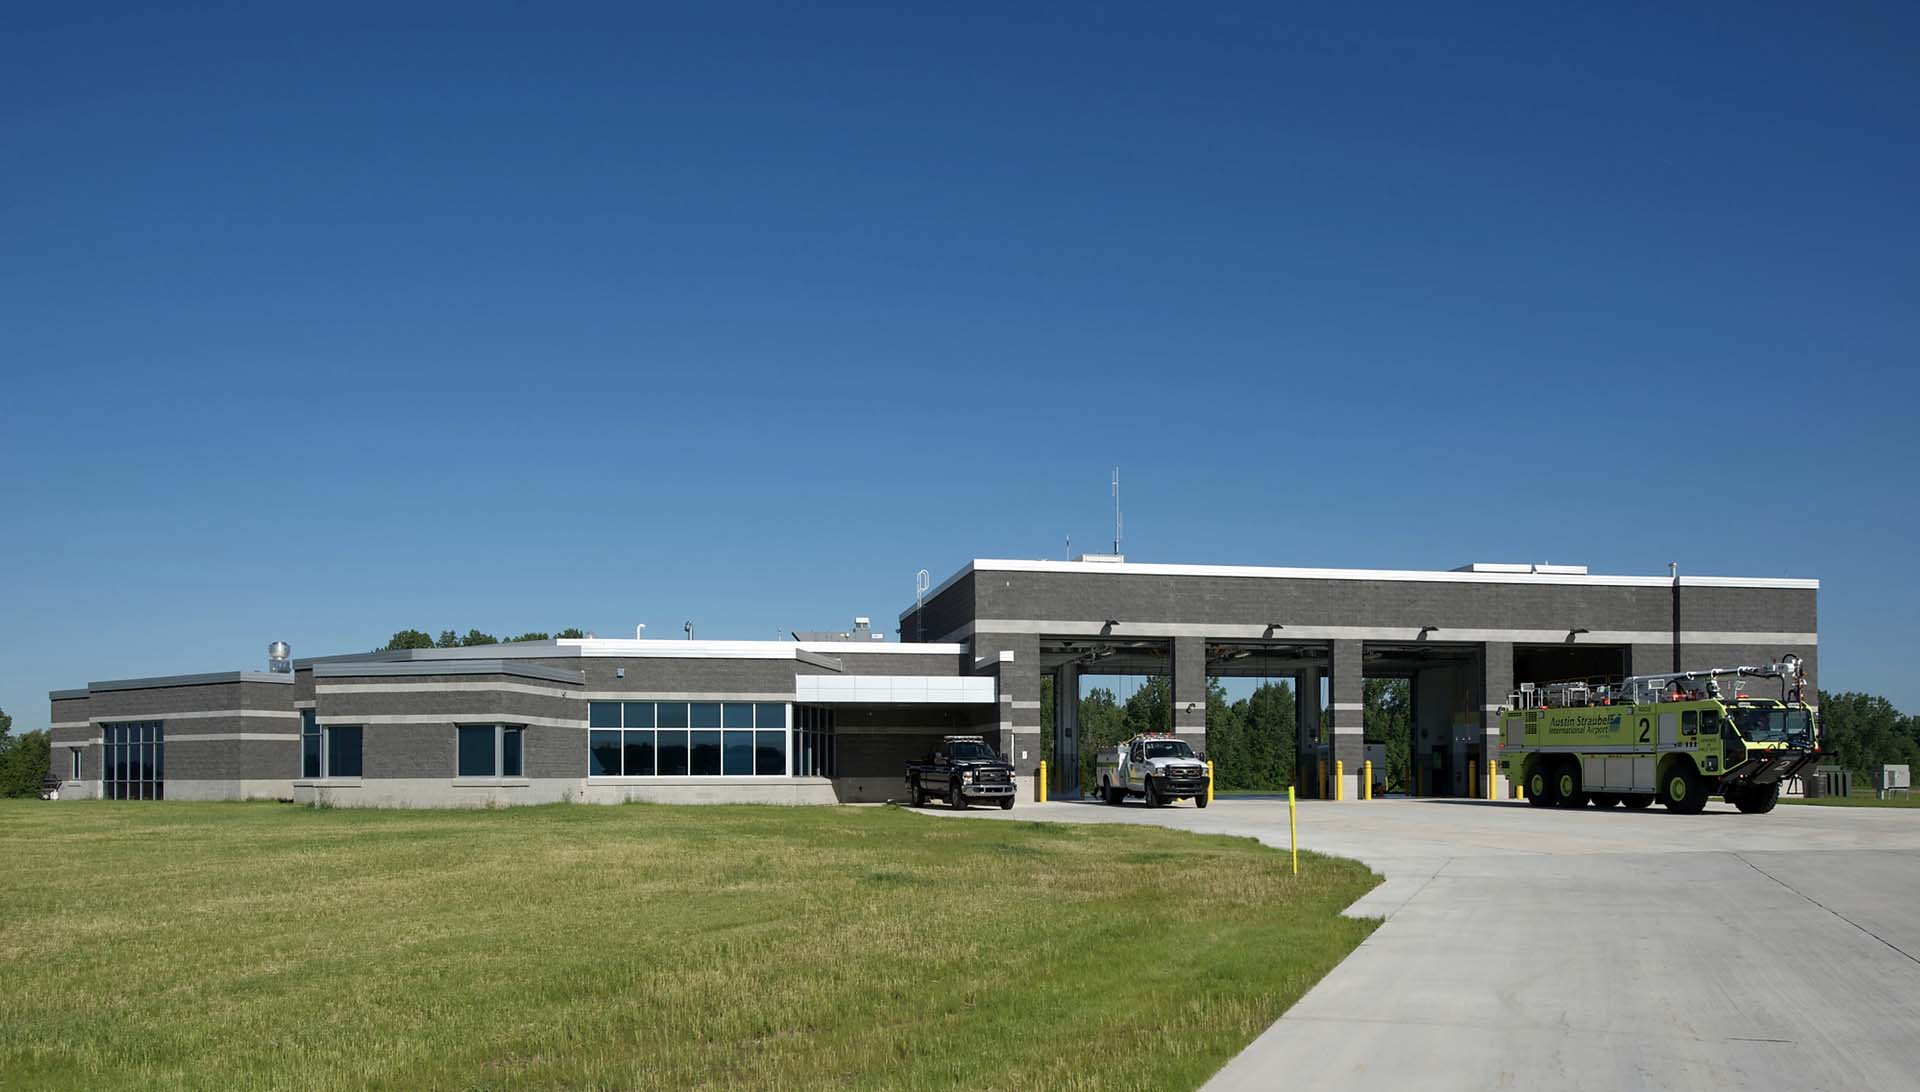 Austin Straubel Airport ARFF Building - Green Bay, WI